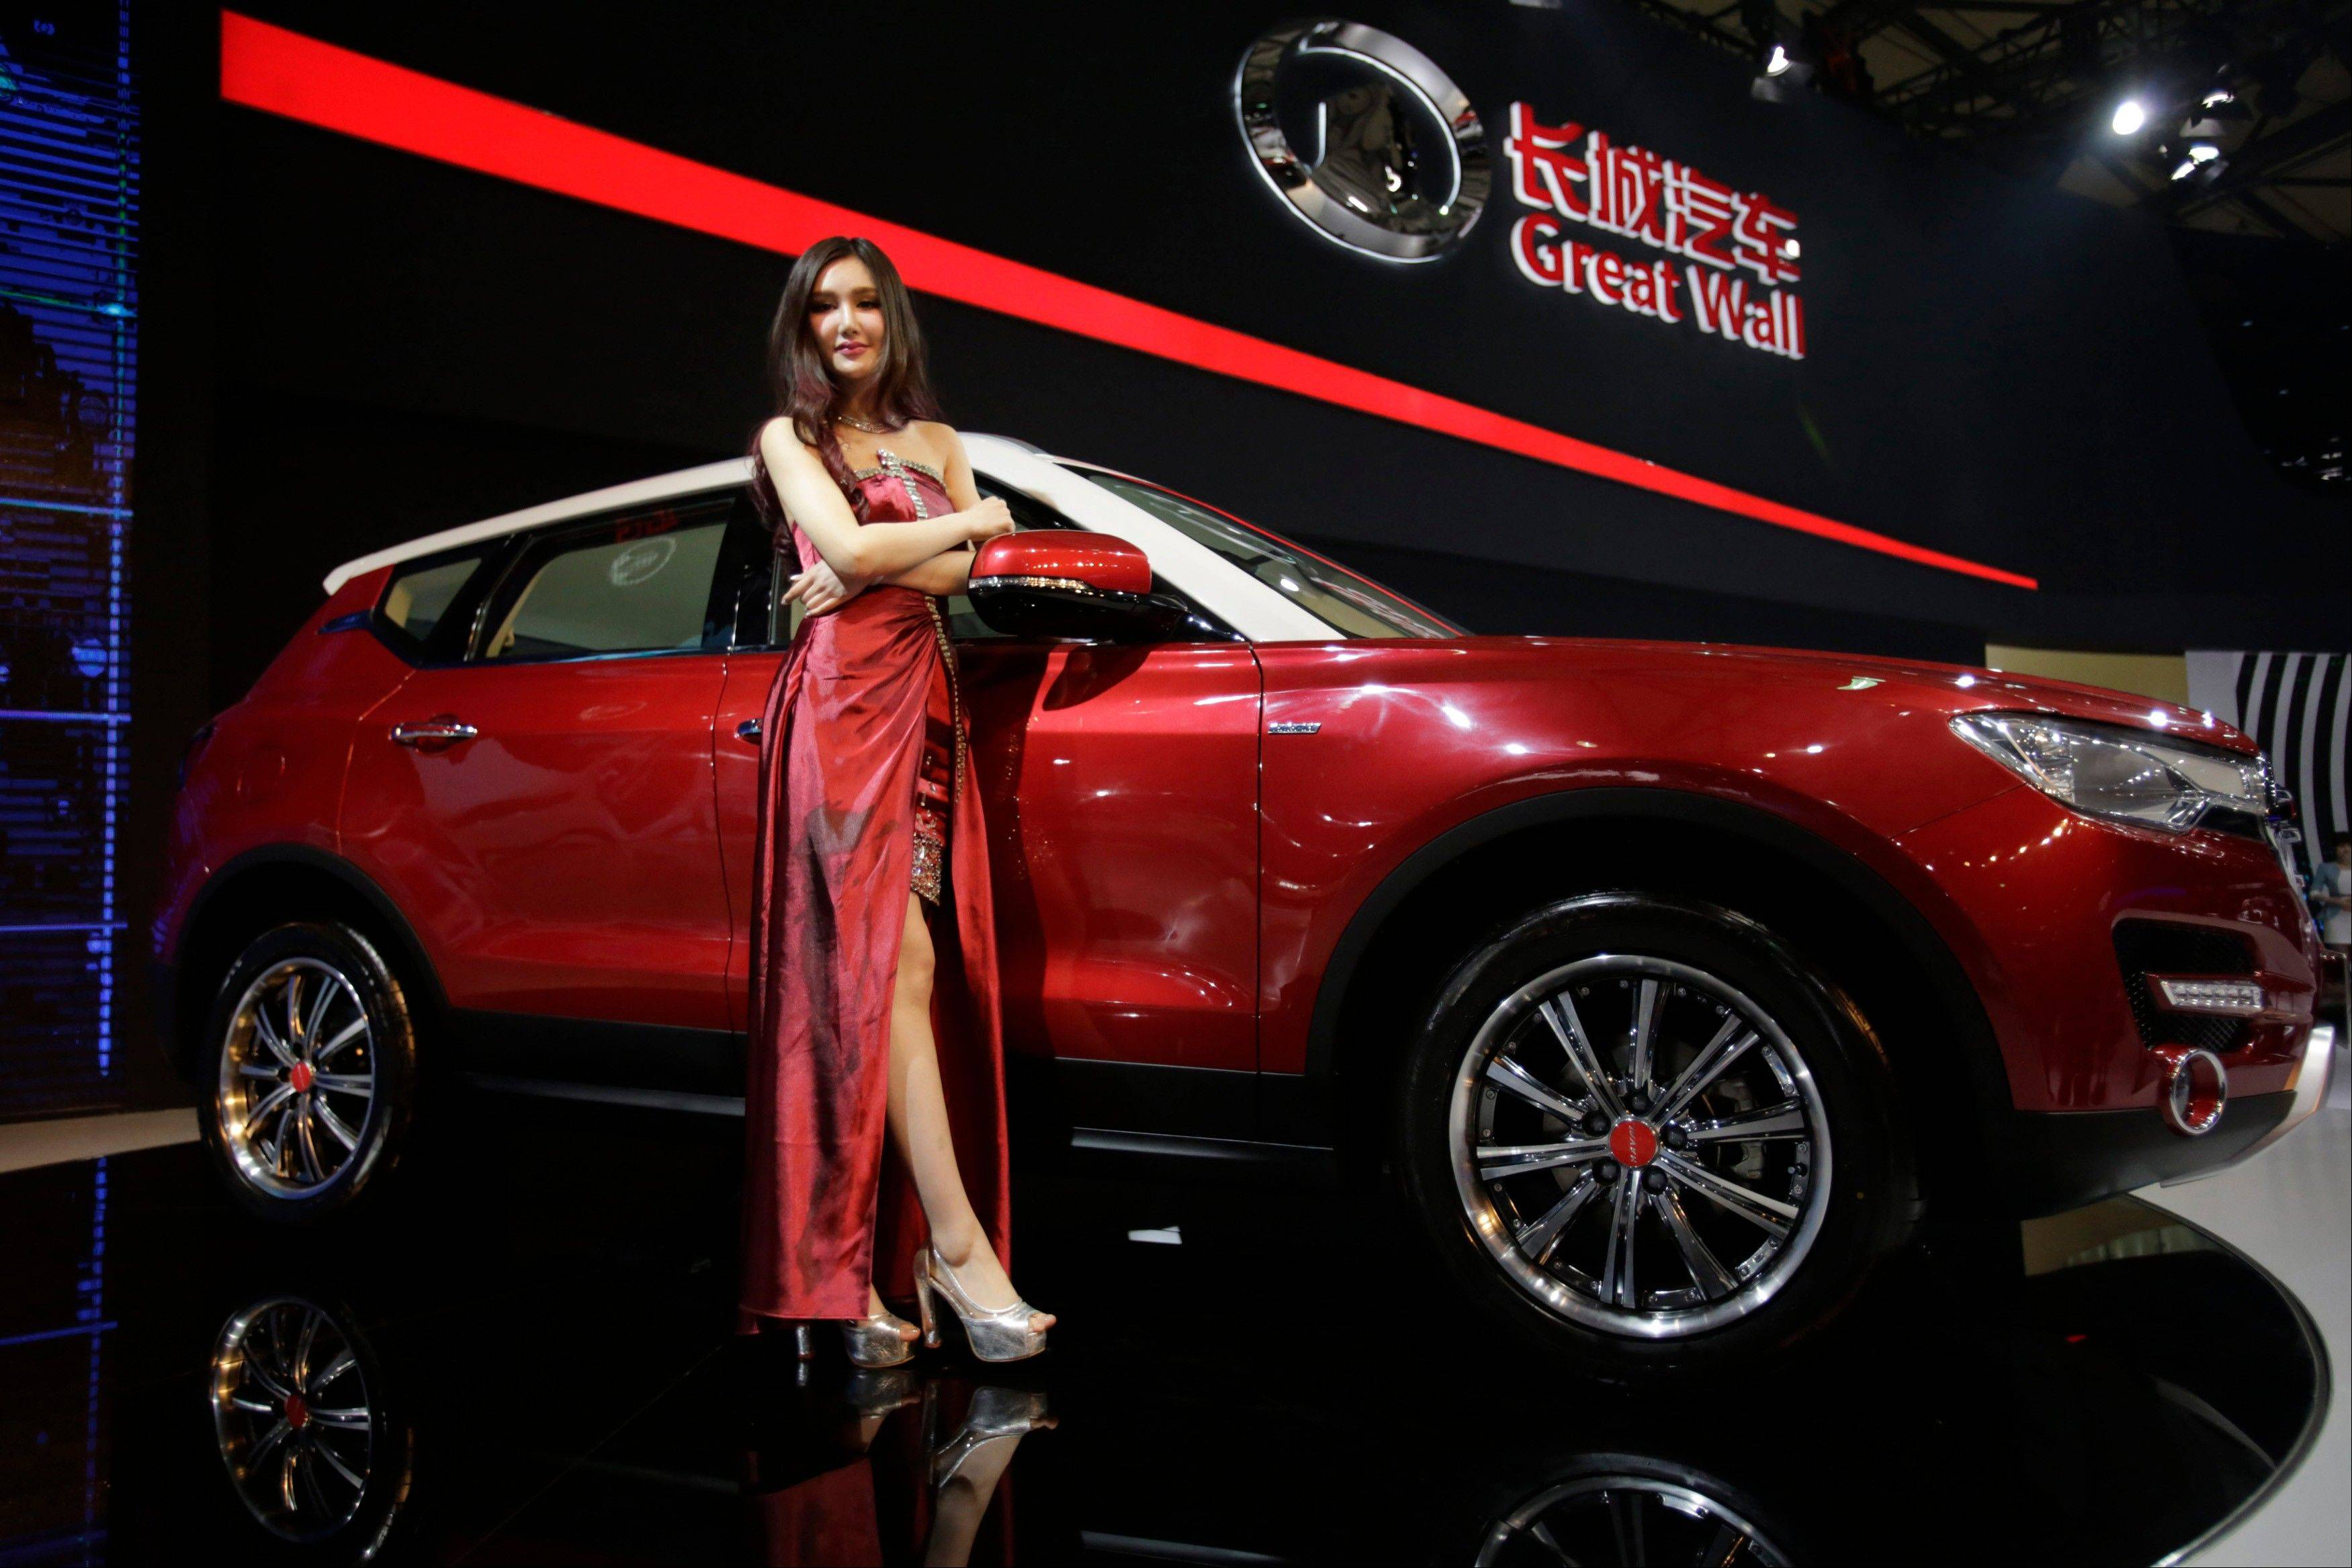 A model poses with a Great Wall H7 SUV at the Shanghai International Automobile Industry Exhibition (AUTO Shanghai) media day in Shanghai, China. SUV sales in China rose 20 percent last year to 2.5 million vehicles, more than double the 8 percent growth of the overall auto market, according to LMC Automotive. SUVs made up 18 percent of all vehicles sold. Great Wall Motor Co., has become the Chinese industry's breakout success on the strength of its SUVs. The company, headquartered in Baoding, an industrial city southwest of Beijing, said SUV sales in the first three months of the year rose 95 percent over a year earlier and accounted for half the 180,000 vehicles it sold.